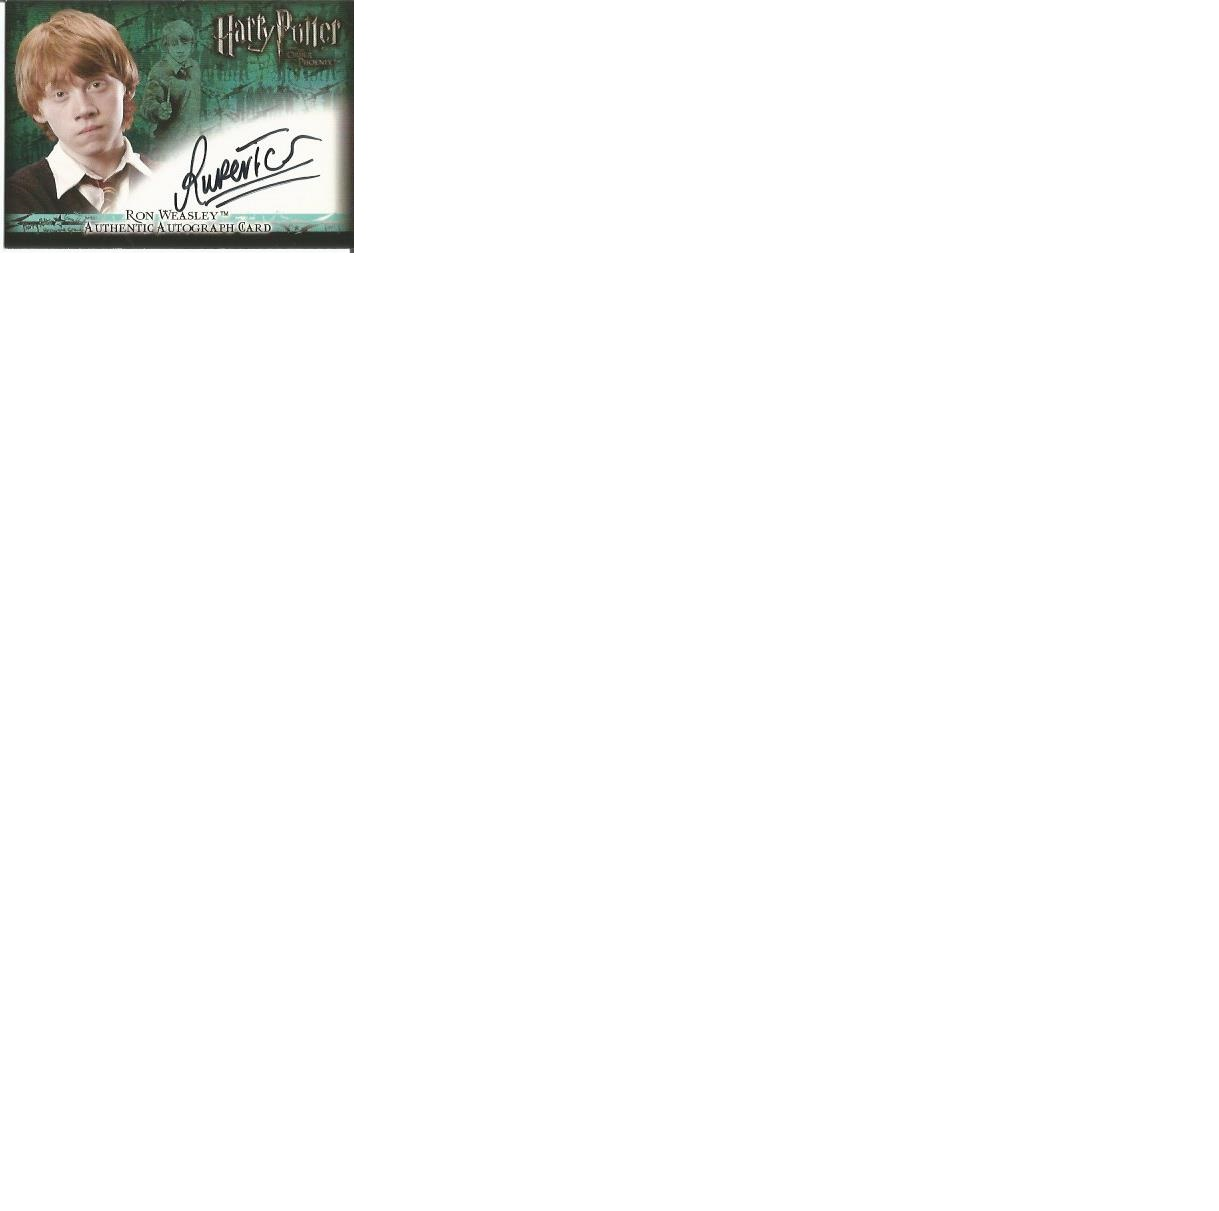 Lot 56 - Rupert Grint as Ron Weasley signed Harry Potter Order of the Phoenix autographed Artbox trading